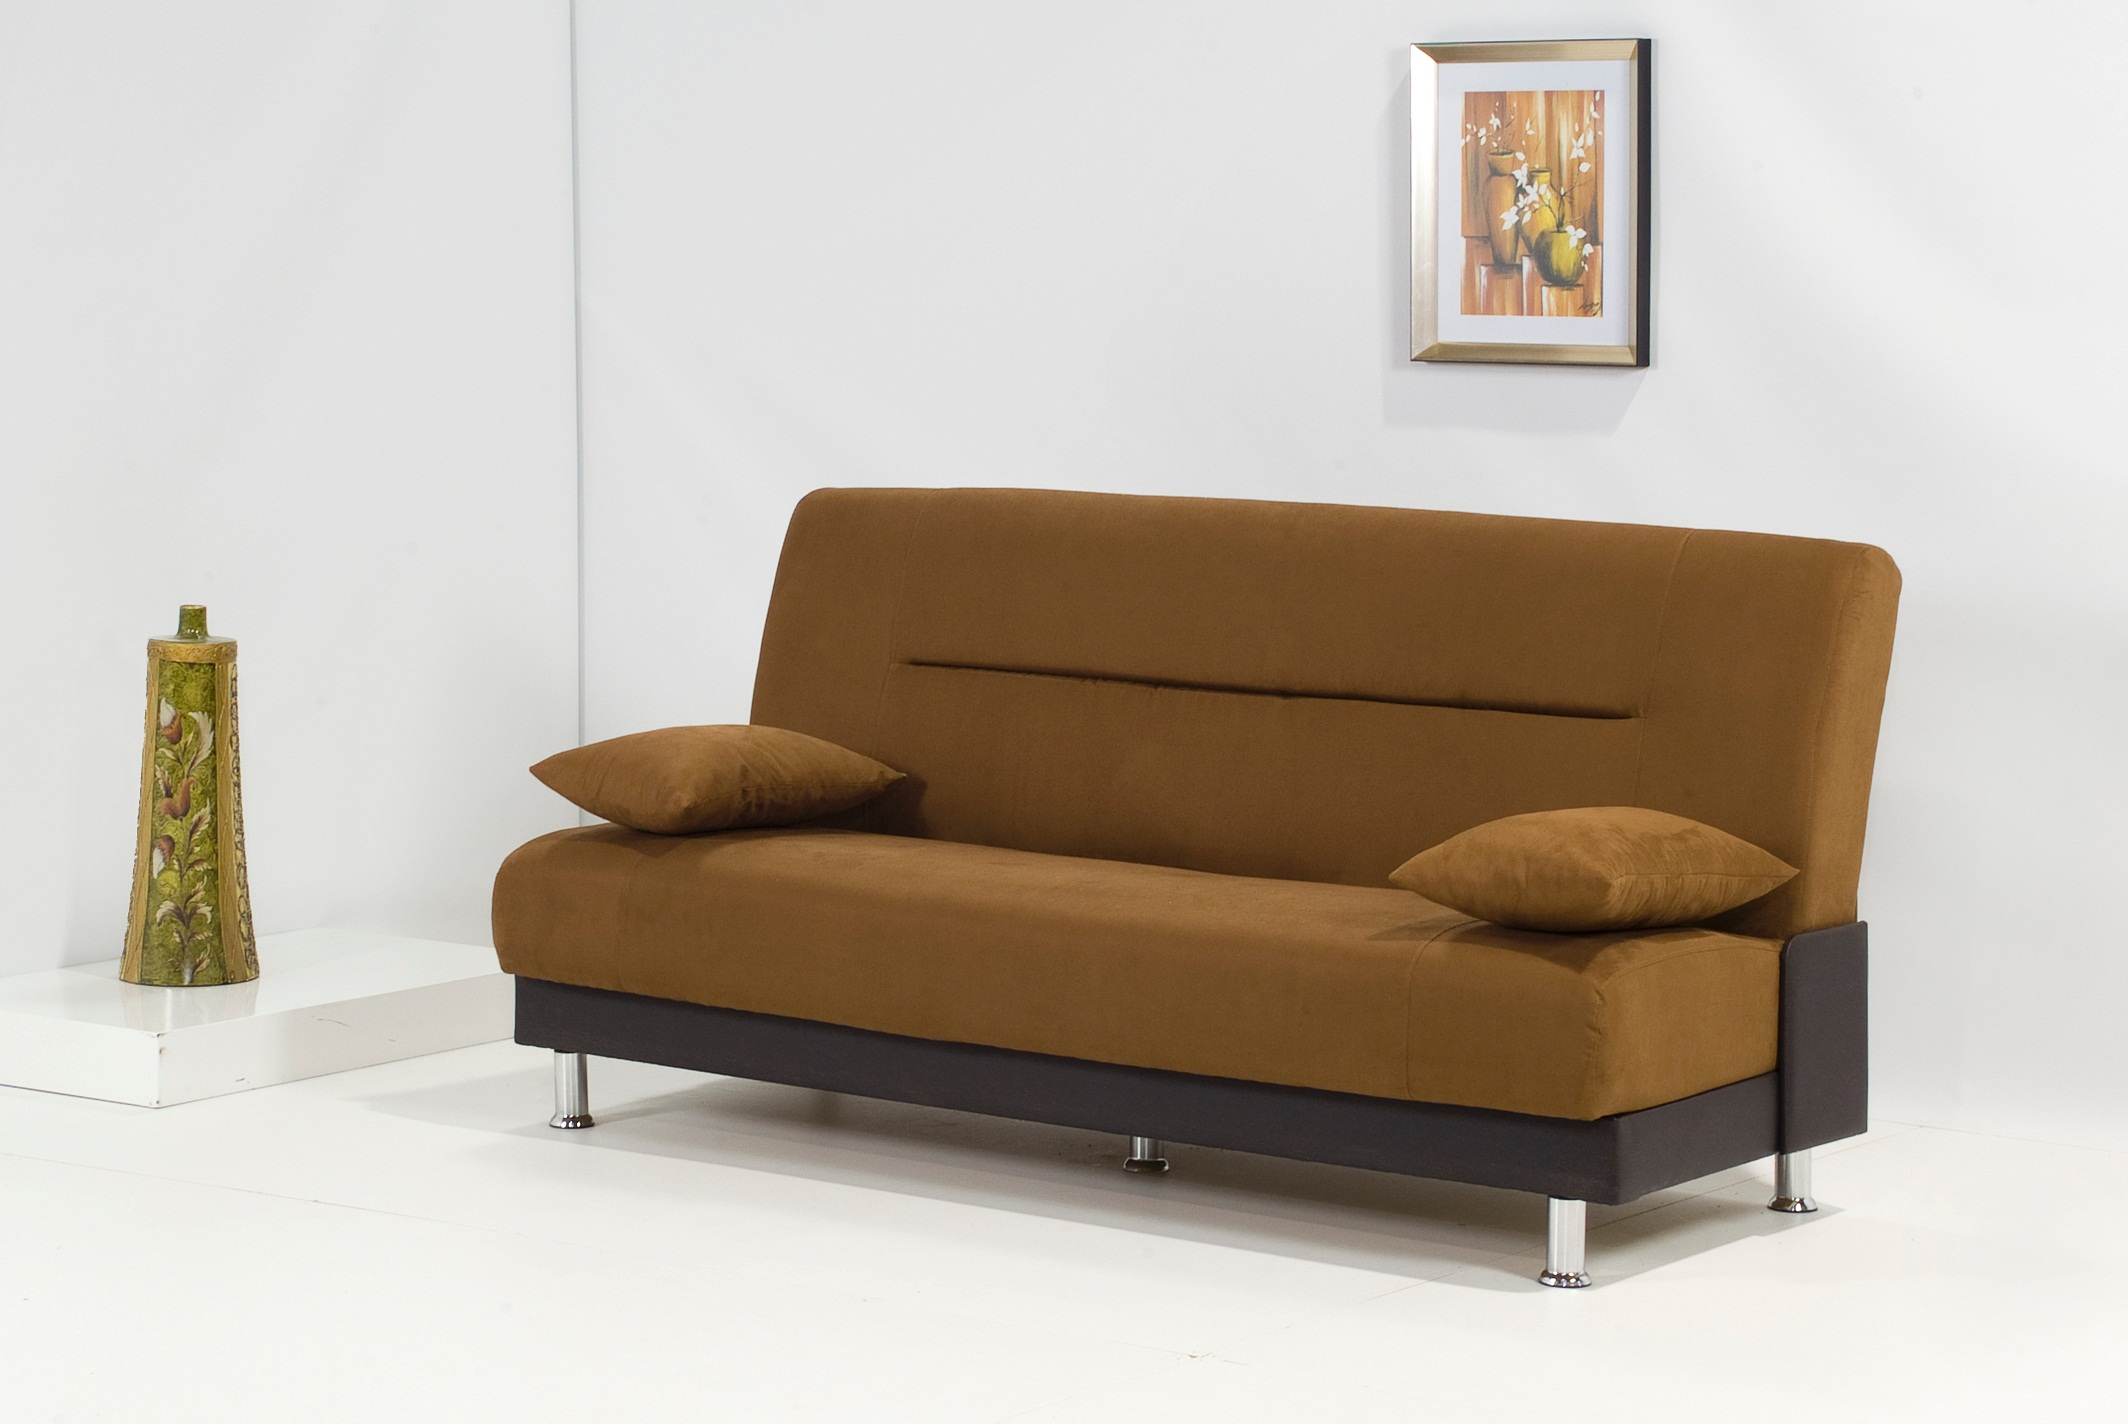 sleeper sofa bed photo - 1